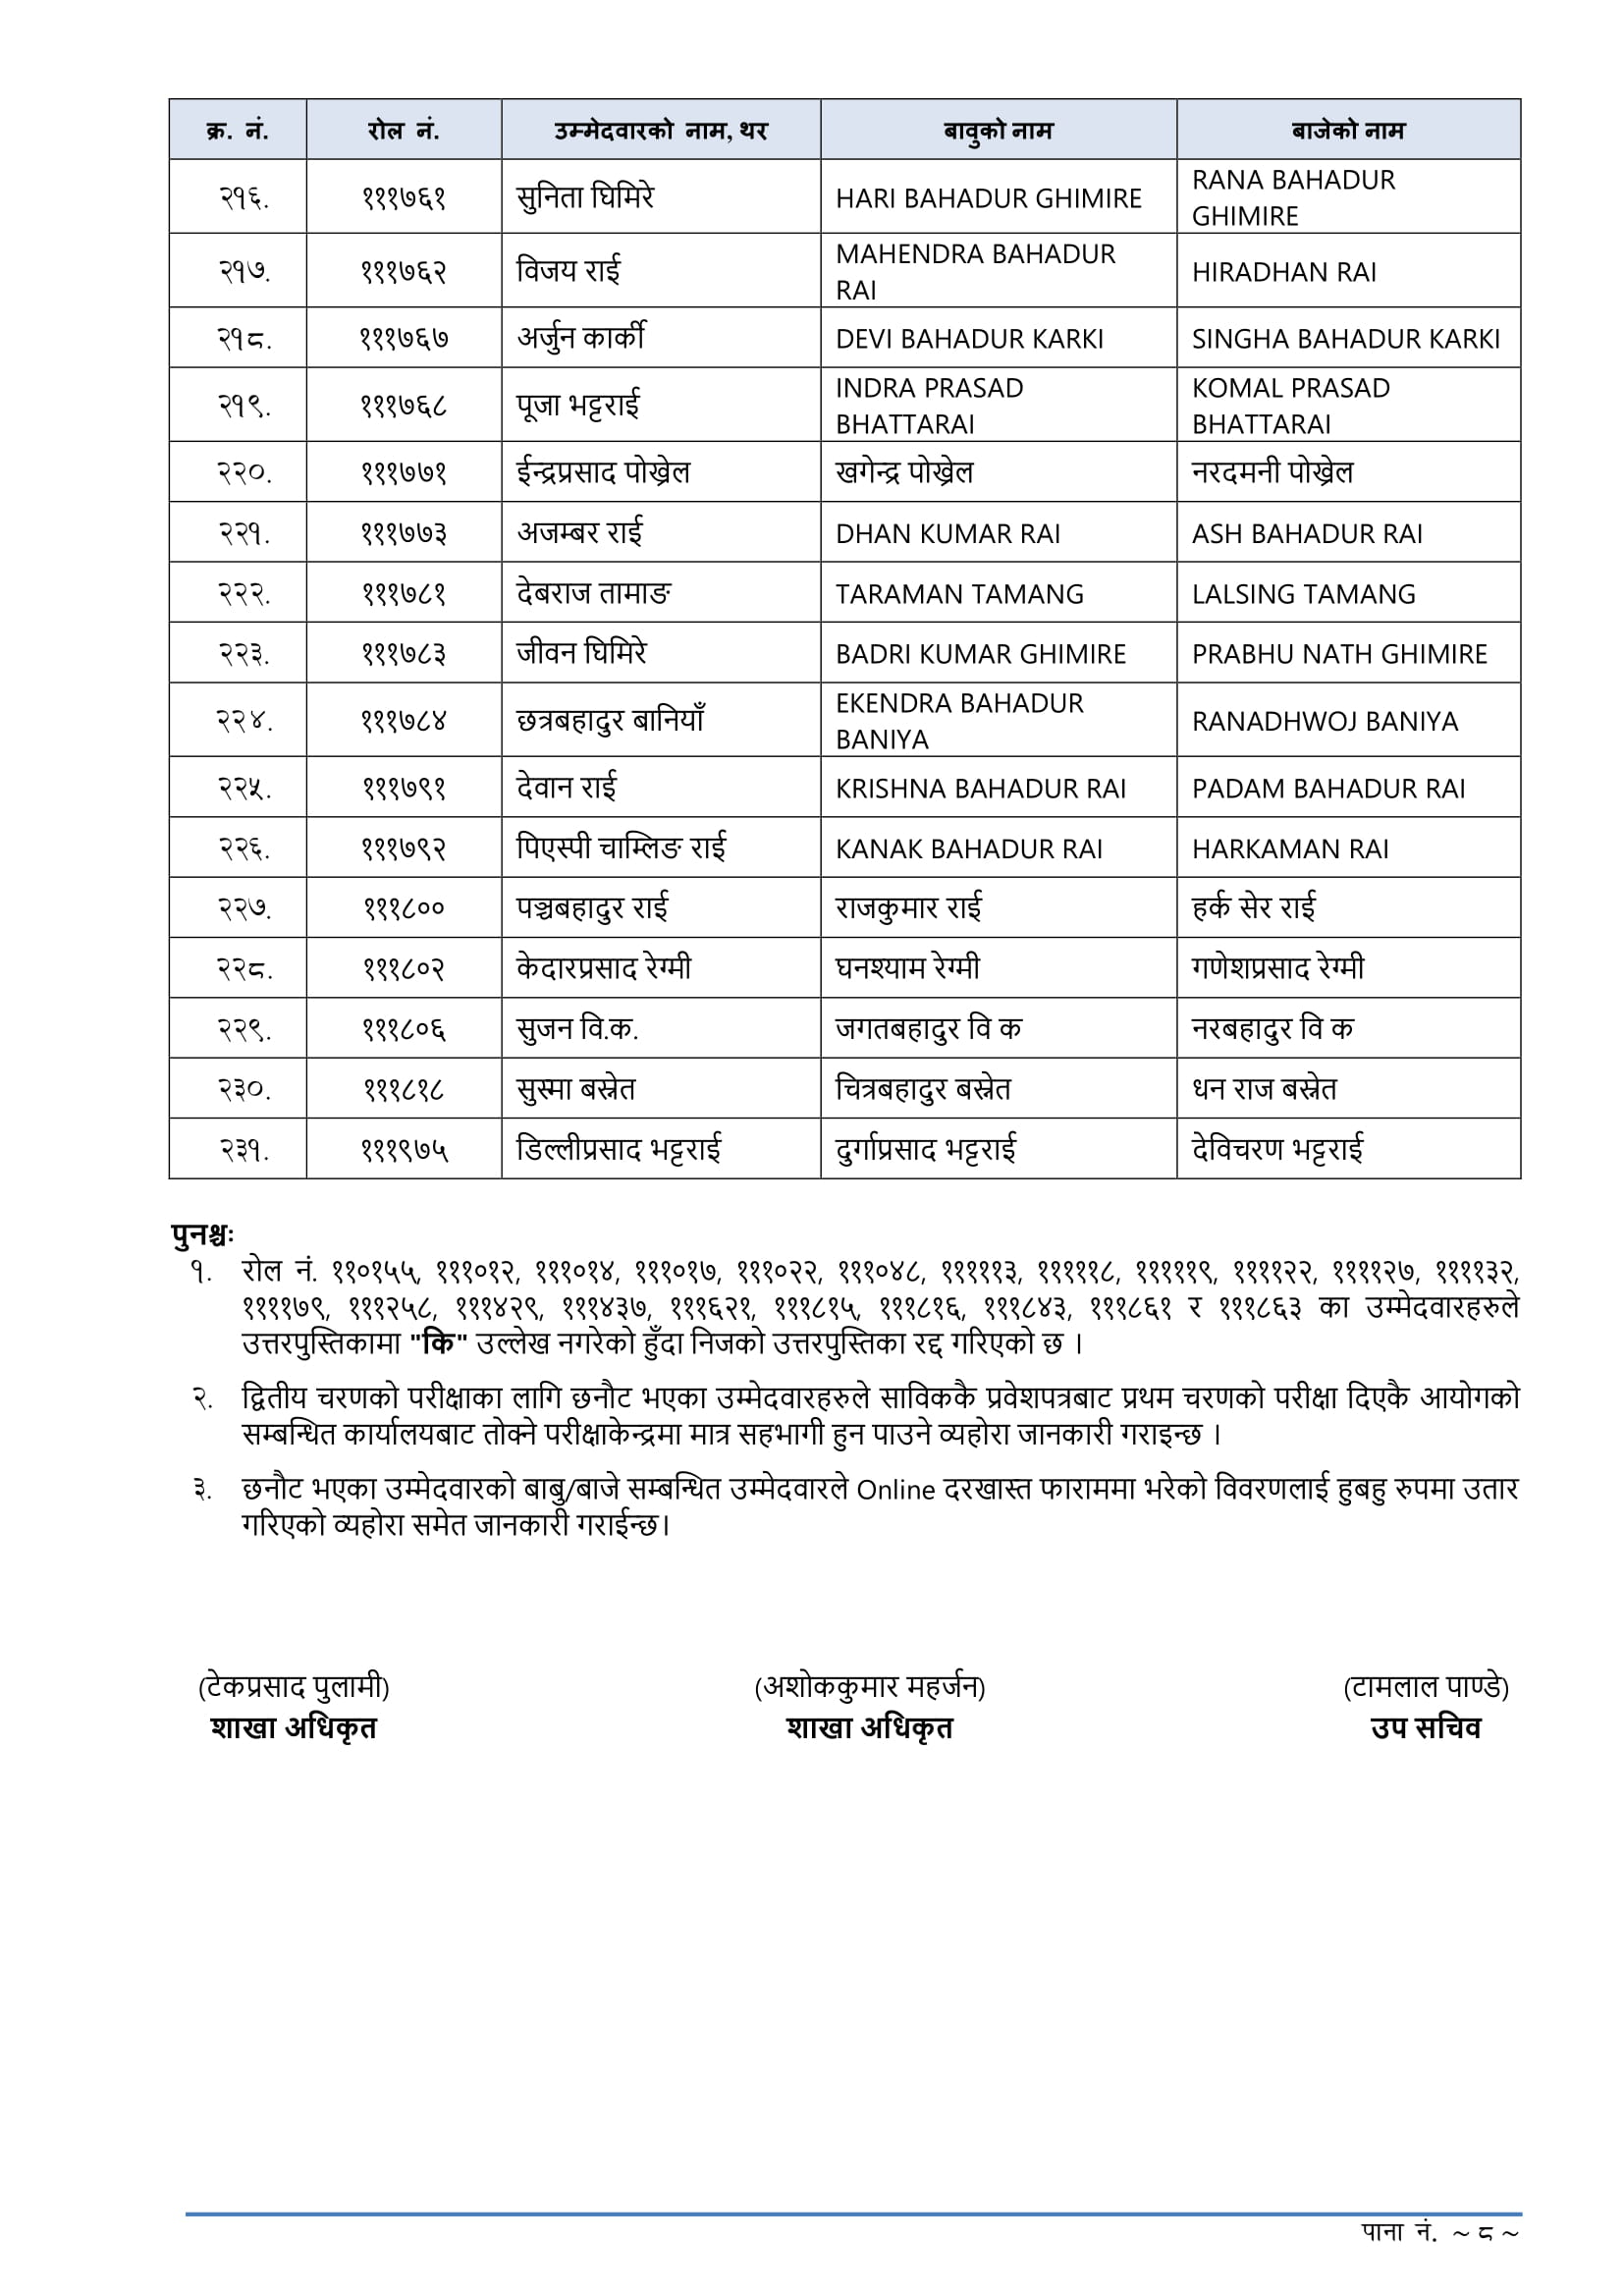 Lok Sewa Aayog Kharidar Written Exam Result - Khotang Lok Sewa Aayog Kharidar Written Exam Result-Khotang. Lok Sewa Aayog Nepal Khotang has published the Entrance Exam result of local level (Sthaniya Taha) Non-Technical 4th level Advertisement No. 15716-15719 / 075-076 (Open and Inclusive), Integral Examination System 4th level (Non-Technical) examination Result of Khotang. The Written Examination total number of Participant 4110 this candidate has been selected 652 in the Entrance Exam.Lok Sewa Aayog Result 2076 Kharidar 4th Level (Sthaniya Taha)Lok Sewa Aayog (Public Service Commission) publishes the final result of written examination 4th Level, Non-Technical, Kharidar (Sthaniya Taha 4th Level) equivalent of the following Regions/districts.Lok Sewa Aayog Result- KhotangLok Sewa Aayog Nepal Published Local Level 5th Level Non-Technical Written Exam of the Entrance exam. The information for the Lok Sewa Aayog result update of Sthanaya Taha 4th level (Kharidar Result) entrance exam result has collected from the official site of Lok Sewa Aayog Nepal. These Lok Sewa Aayog result notices are for all advertisement numbers of the following Regions/districts.Click here to view Lok Sewa Aayog Kharidar Written Exam Result - Khotang Lok Sewa Aayog Jaleshwar Khridar Result 2076, Lok Sewa Aayog Jaleshwar Khridar Result, Jaleshwar Khridar Result 2076, Jaleshwar Khridar Result,lok sewa natija, Lok Sewa Natija 2076, Lok Sewa Result, Lok Sewa Result 2076, Lok Sewa Aayog Natija, Lok Sewa Aayog Natija 2076, lok sewa aayog result, Lok Sewa Aayog Result 2076, Lok sewa Aayog Sthaniya Taha result , Lok sewa Sthaniya Taha result, Lok Sewa Nayab Subba Result, lok sewa Nayab Subba result, Lok Sewa Result Nayab Subba, Lok Sewa Result Nayab Subba 2076 , psc Nayab Subba result , PSC Nayab Subba Result 2076, Sthaniya Taha Nayab Subba natija , Sthaniya Taha Nayab Subba result, Lok sewa aayog Nayab Subba Result ,lok sewa aayog Nayab Subba result 2076, Lok Sewa Khridar Result,lok sewa Khridar result, Lok Sewa Result Khridar, Lok Sewa Result Khridar 2076 , psc Khridar result , PSC Khridar Result 2076, Sthaniya Taha Khridar natija , Sthaniya Taha Khridar result,Lok sewa aayog Khridar Result, lok sewa aayog Khridar result 2076, स्थानीय तह नतिजा, 4th Level Result, lok sewa aayog result, lok sewa aayog result 2076, lok sewa aayog result 2019, lok sewa aayog result Kharidar, lok sewa aayog result 4th Level, lok sewa aayog result 2076 sthaniya taha, lok sewa aayog result 2019 sthaniya taha, lok sewa result, lok sewa result 2076, lok sewa result 2019, lok sewa result kharidar, lok sewa result 4th Level, lok sewa result 2076 sthaniya taha, lok sewa result 2019 sthaniya taha,